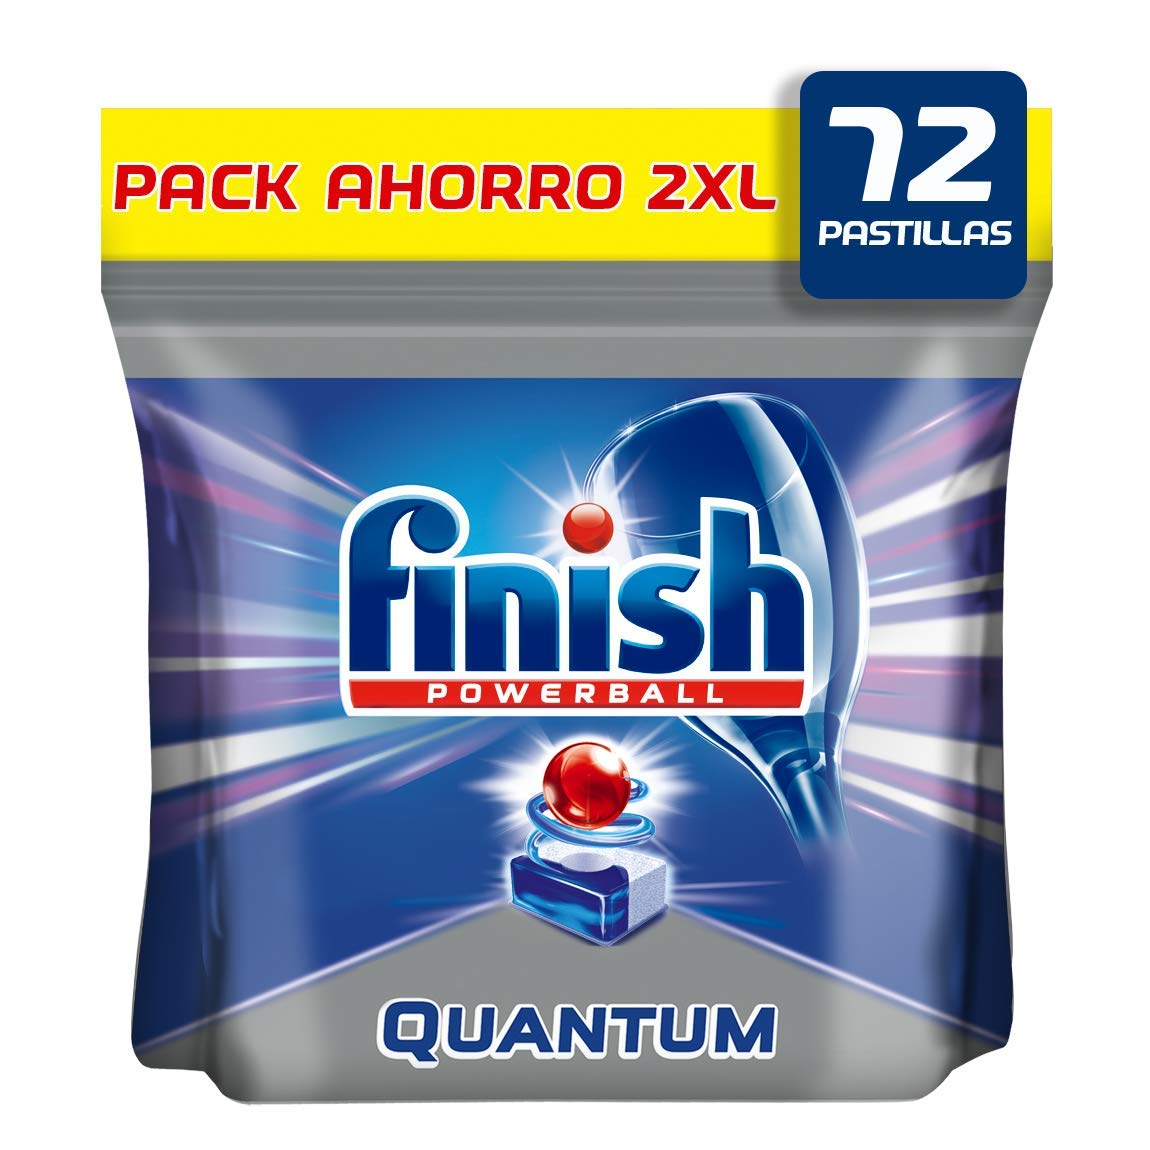 Finish Quantum Pastillas para Lavavajillas Regular - 72 Pastillas ...